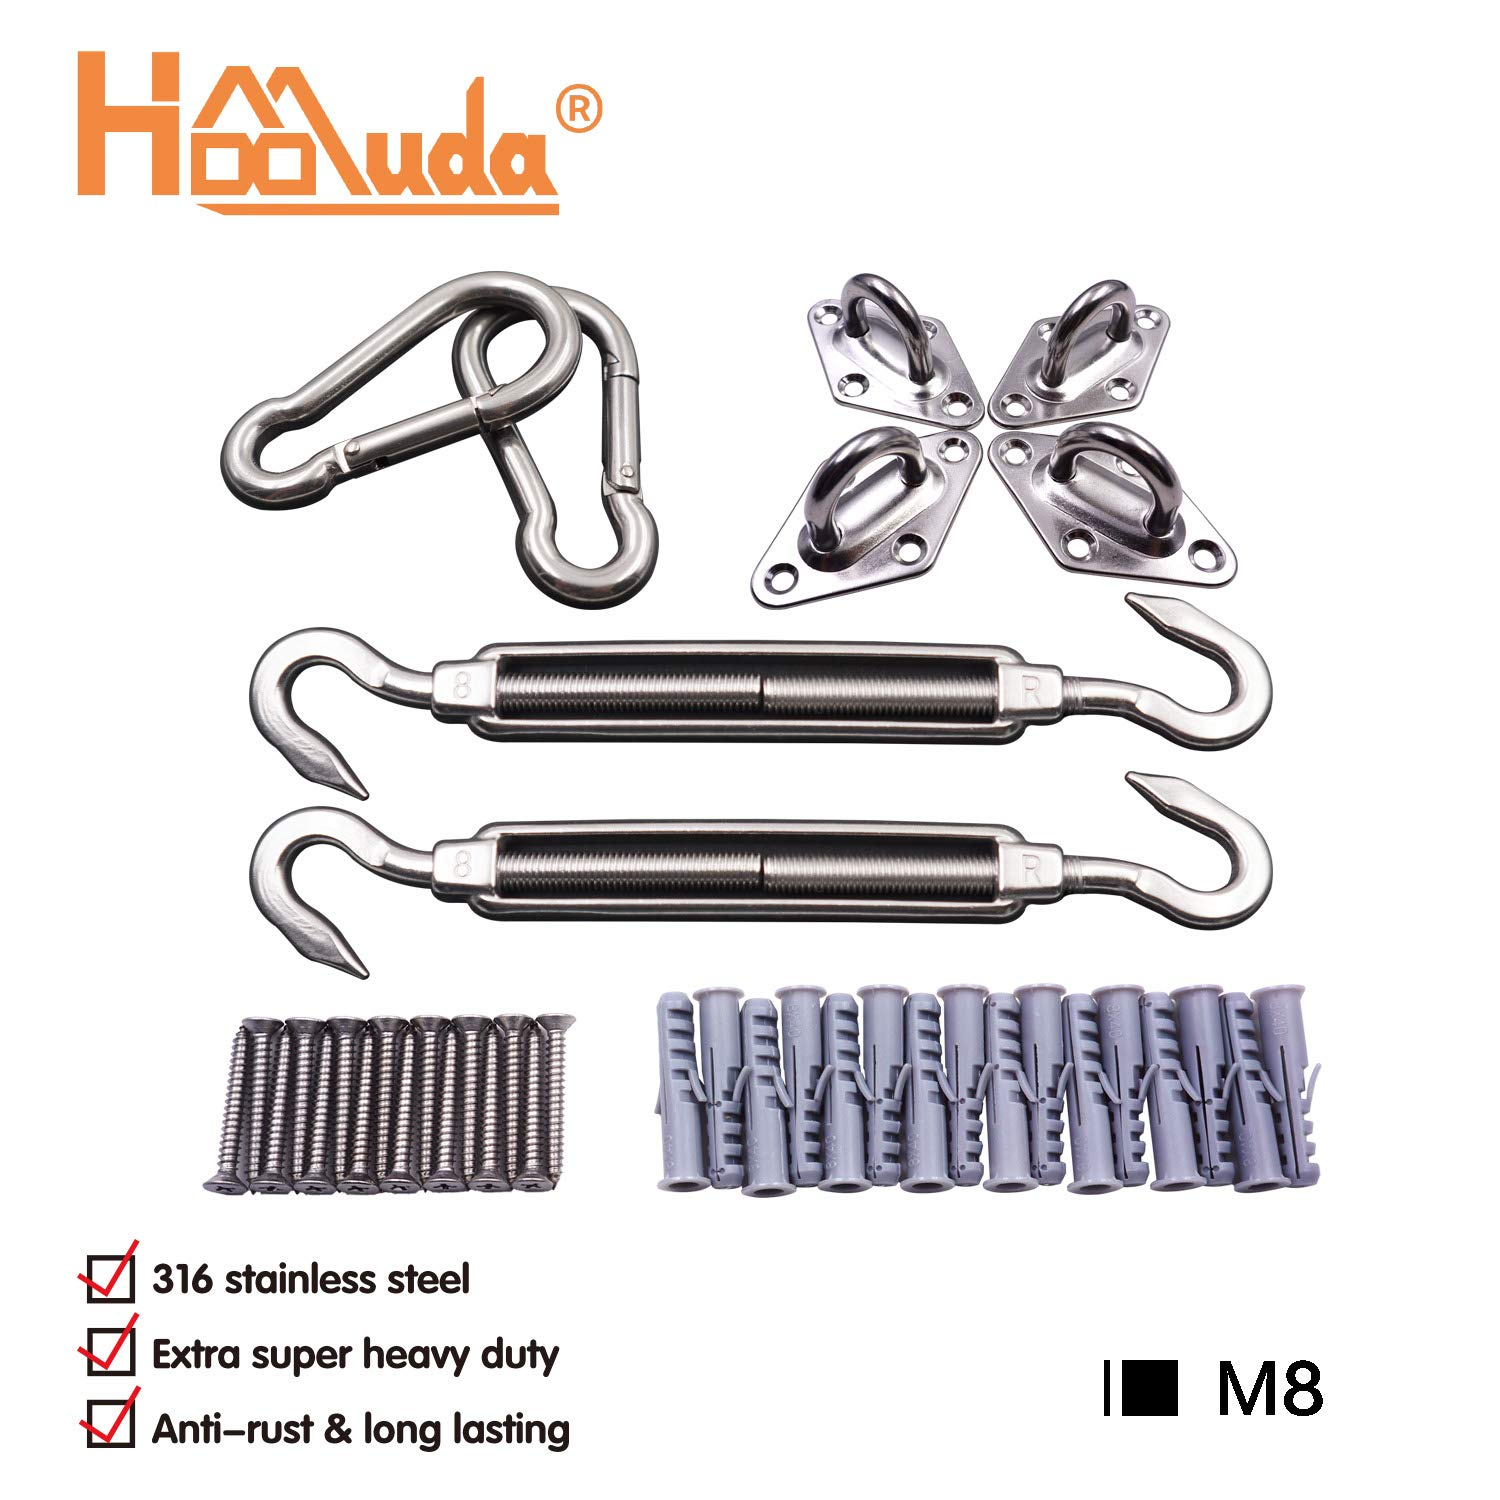 8 Inch Sun Shade Sail Hardware Kit for Rectangle & Square Sun Shade Sail- Super Heavy Duty & Anti-Rust 316 Marine Grade Stainless Steel Made by Hoomuda